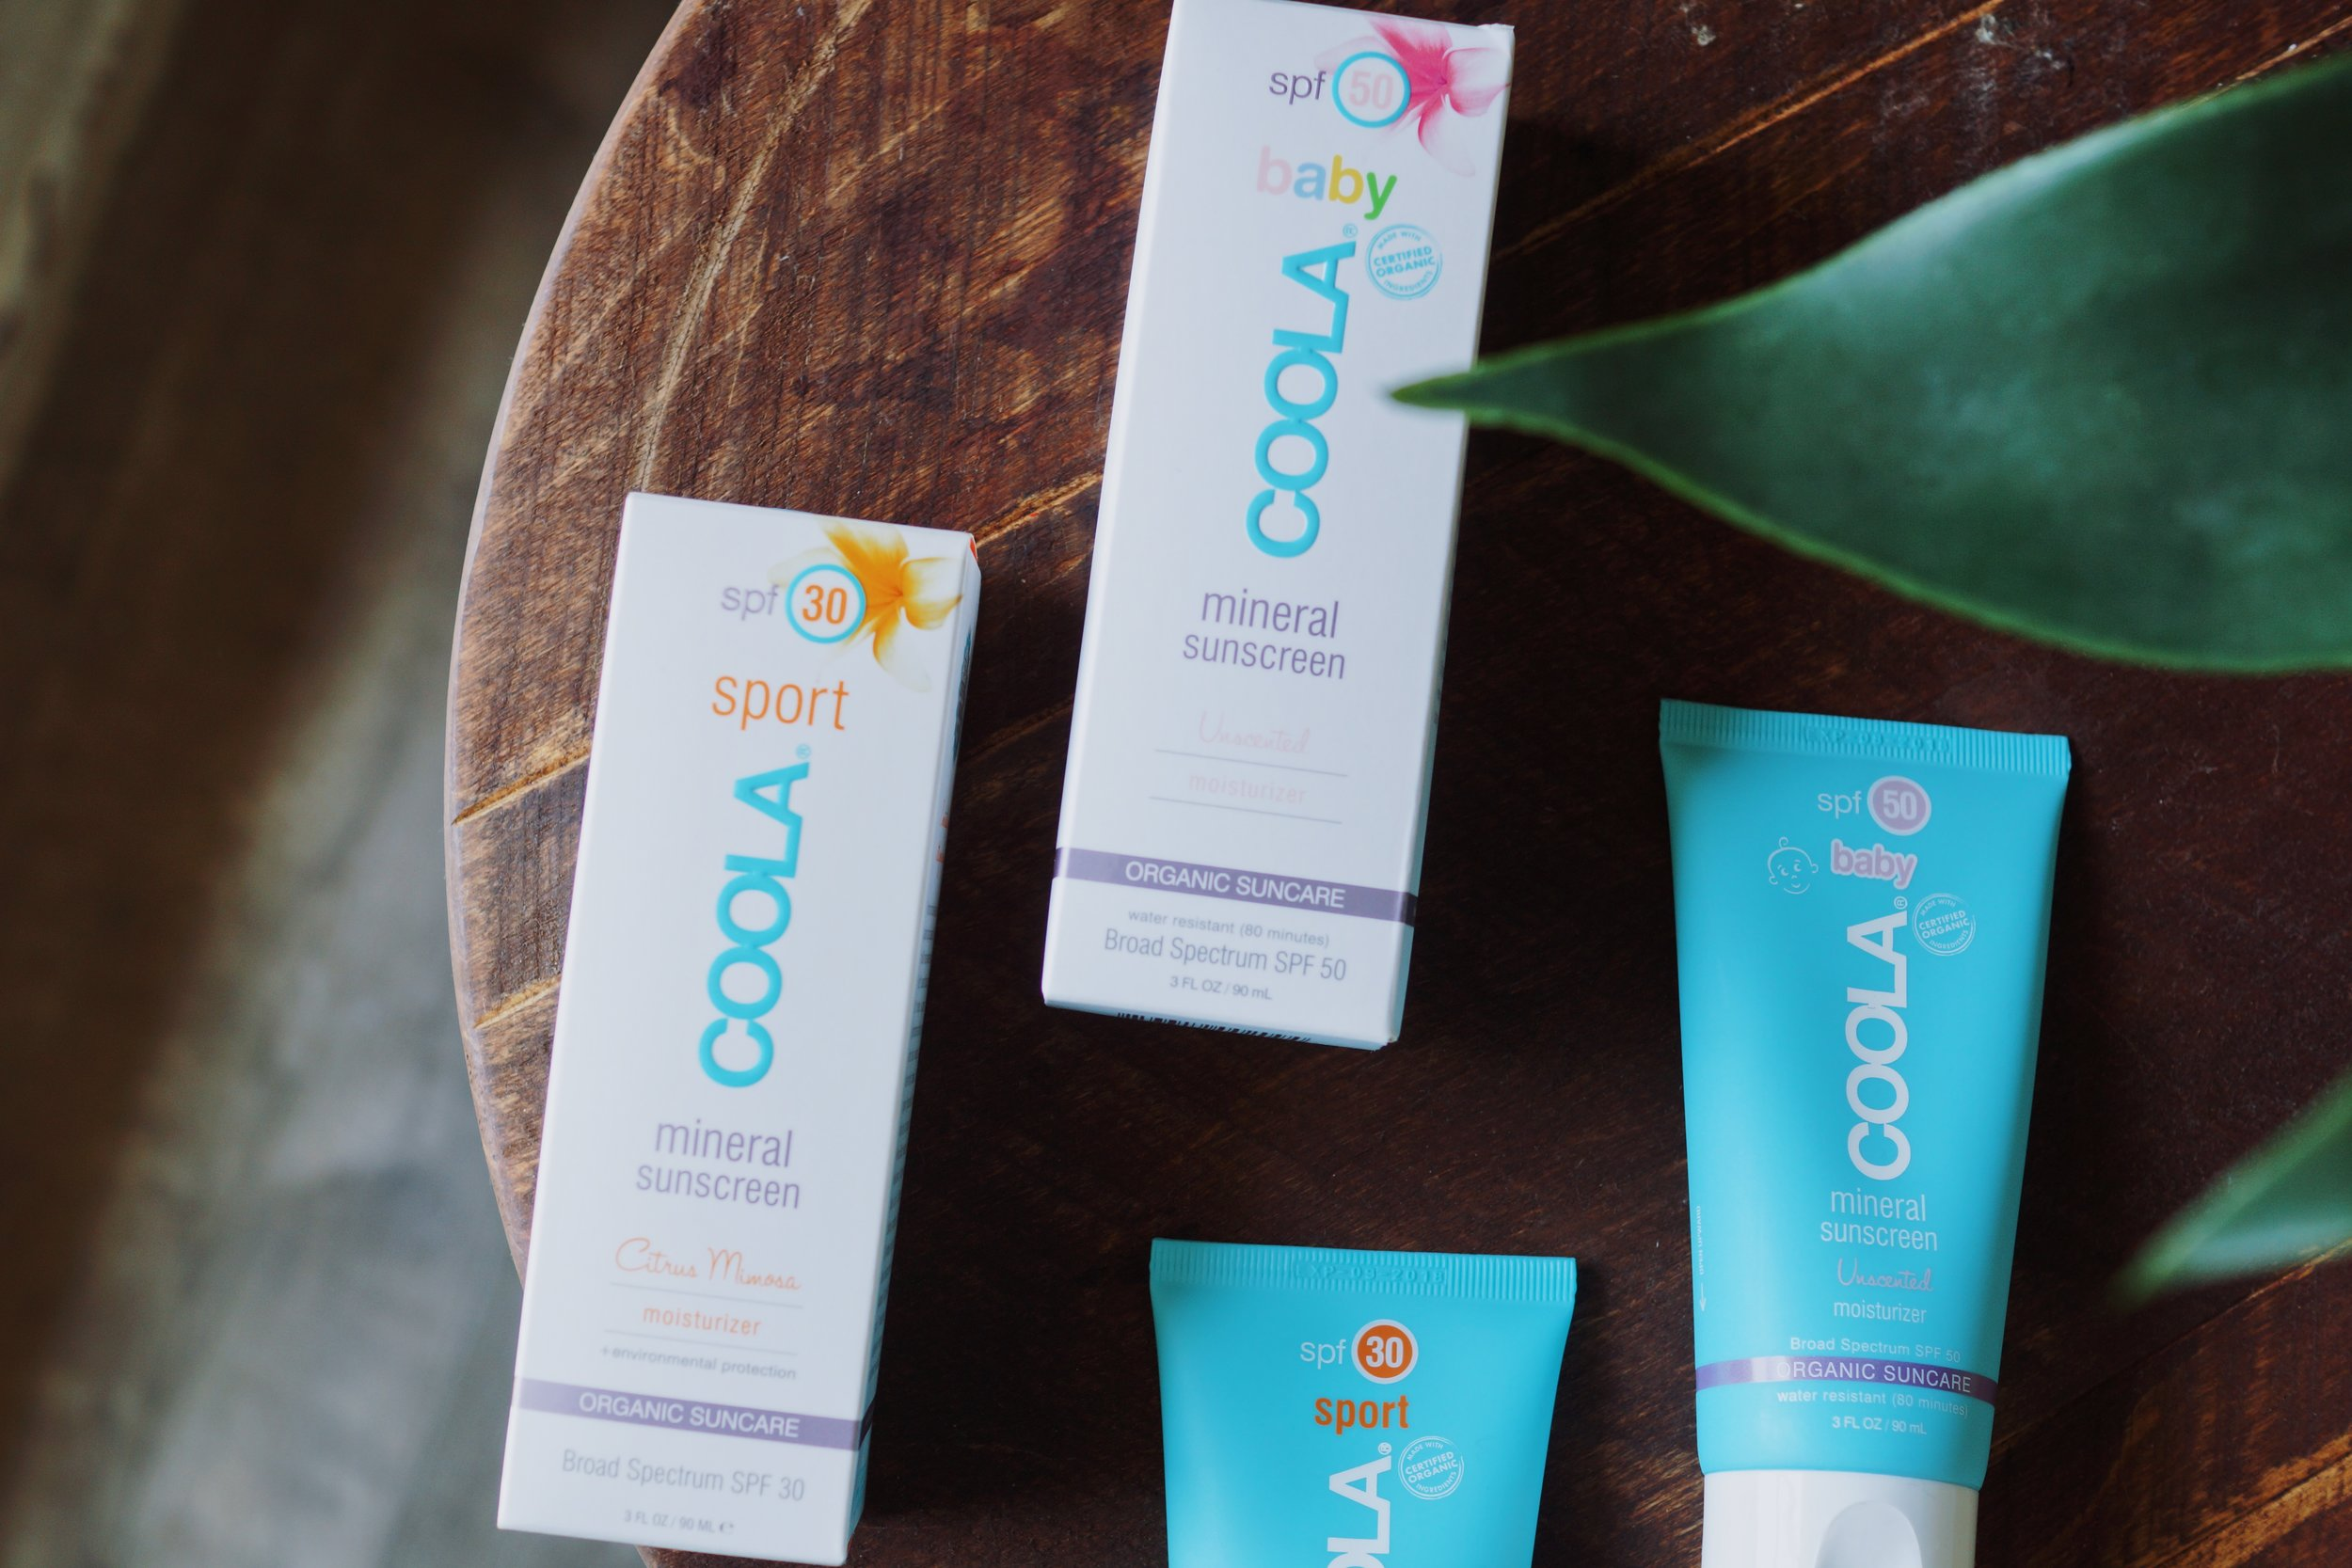 Coola_Products_2.JPG